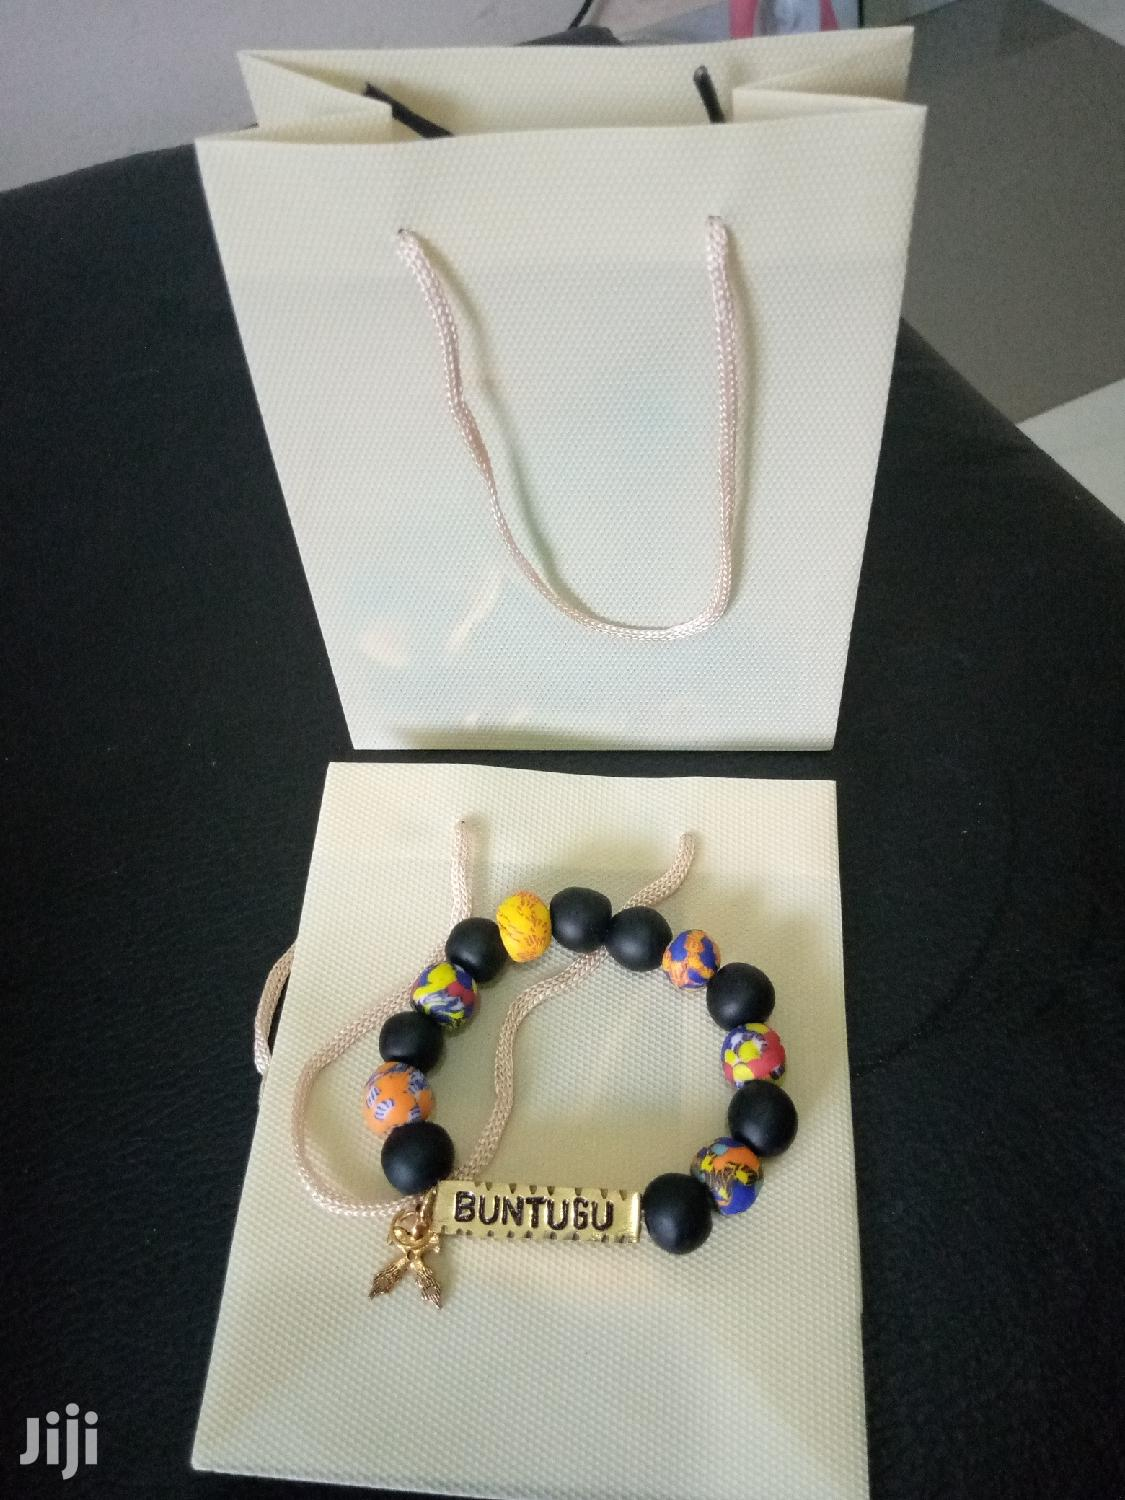 Customized Wrist Band | Jewelry for sale in Accra Metropolitan, Greater Accra, Ghana